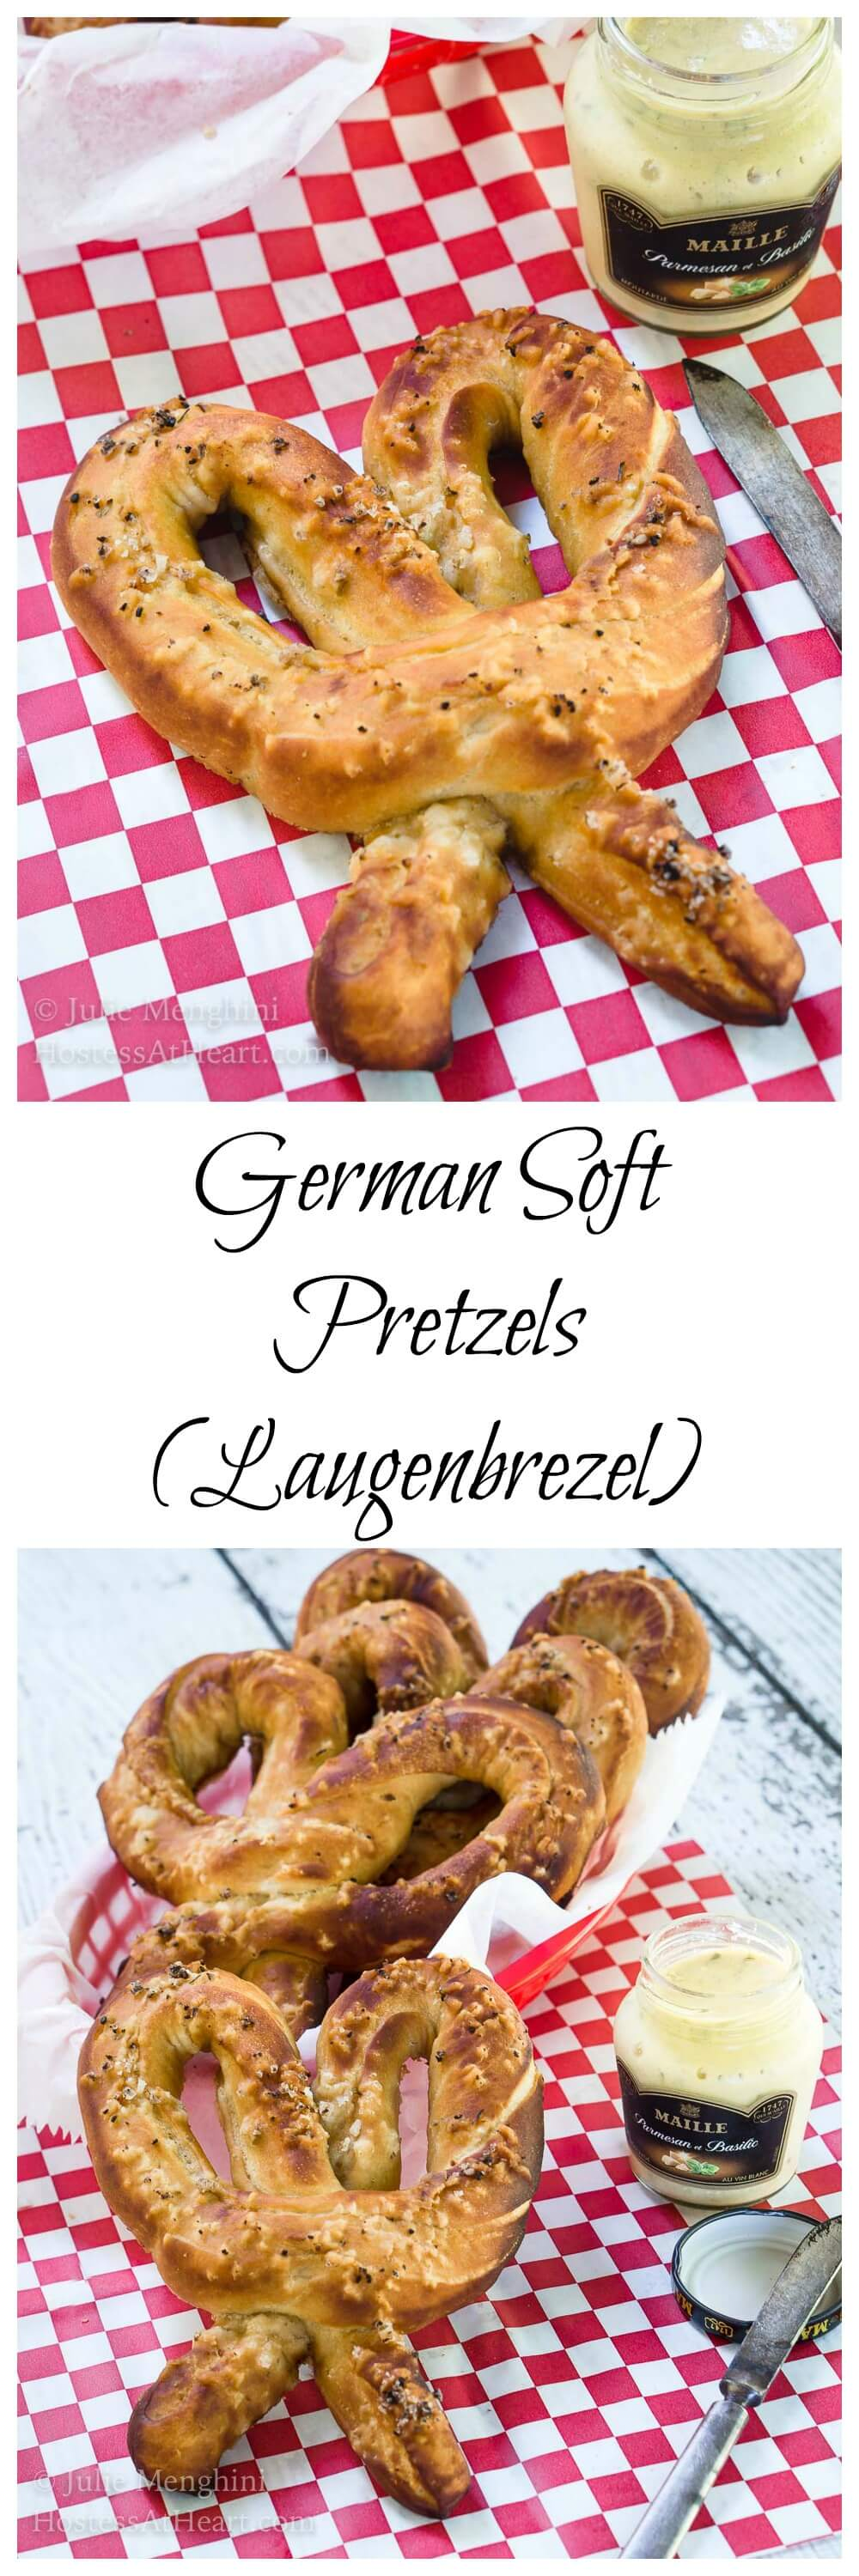 This German Soft Pretzel recipe has that perfect pull when you bite into them and a soft and tender center.  These pretzels are so good they don't even need a dipping sauce. | HostessAtHeart.com